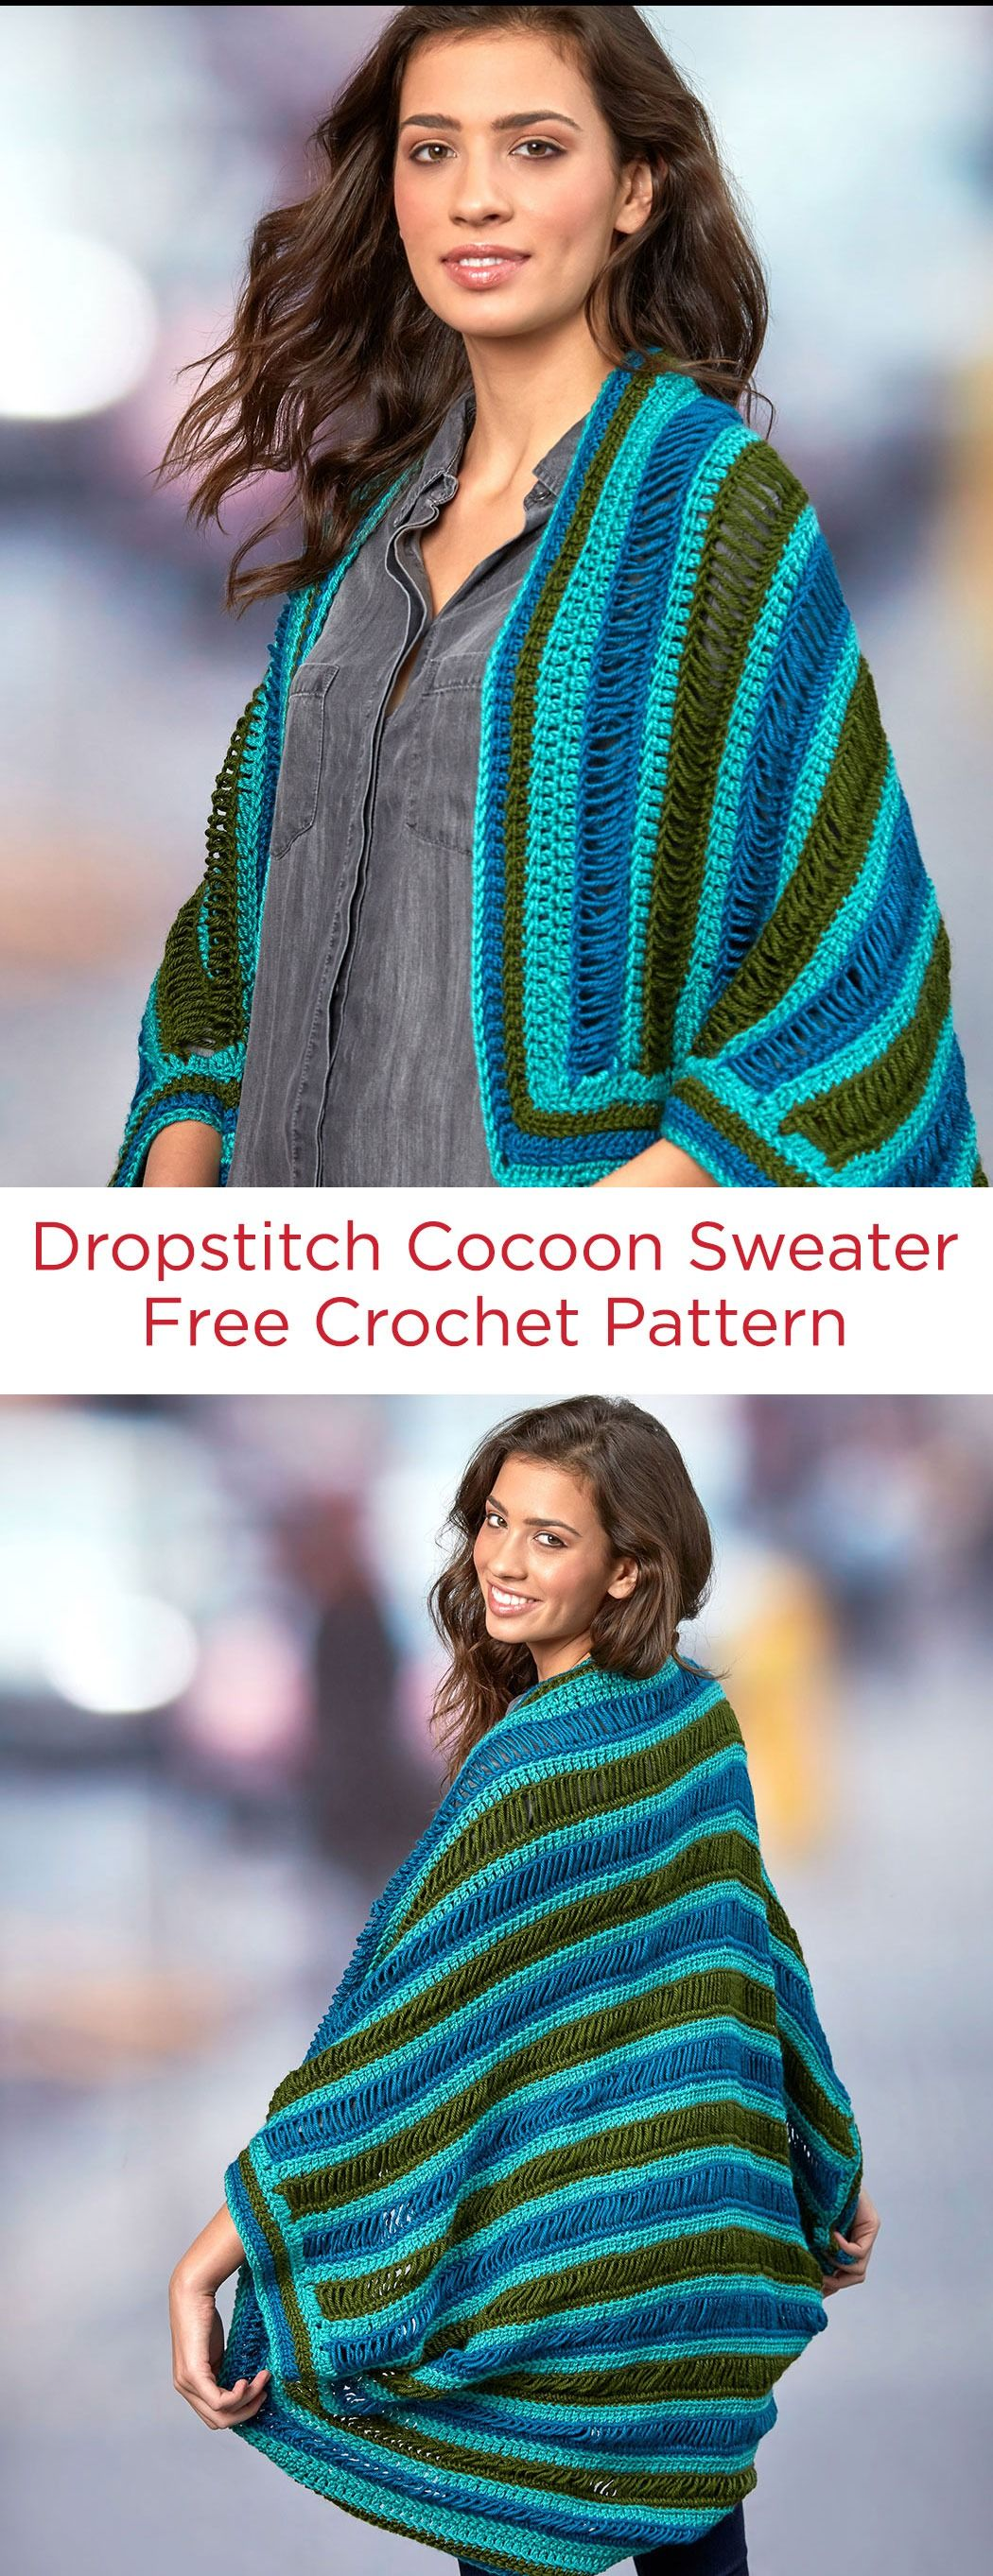 Dropstitch Cocoon Sweater Free Crochet Pattern in Red Heart Yarns -- Easy to fit and easy to wear, this cocoonstyle sweater is perfect as a wardrobe addition that has a relaxed attitude. Sweater is crocheted in a rectangle and then seams are sewn to form armholes. Six sizes are included.